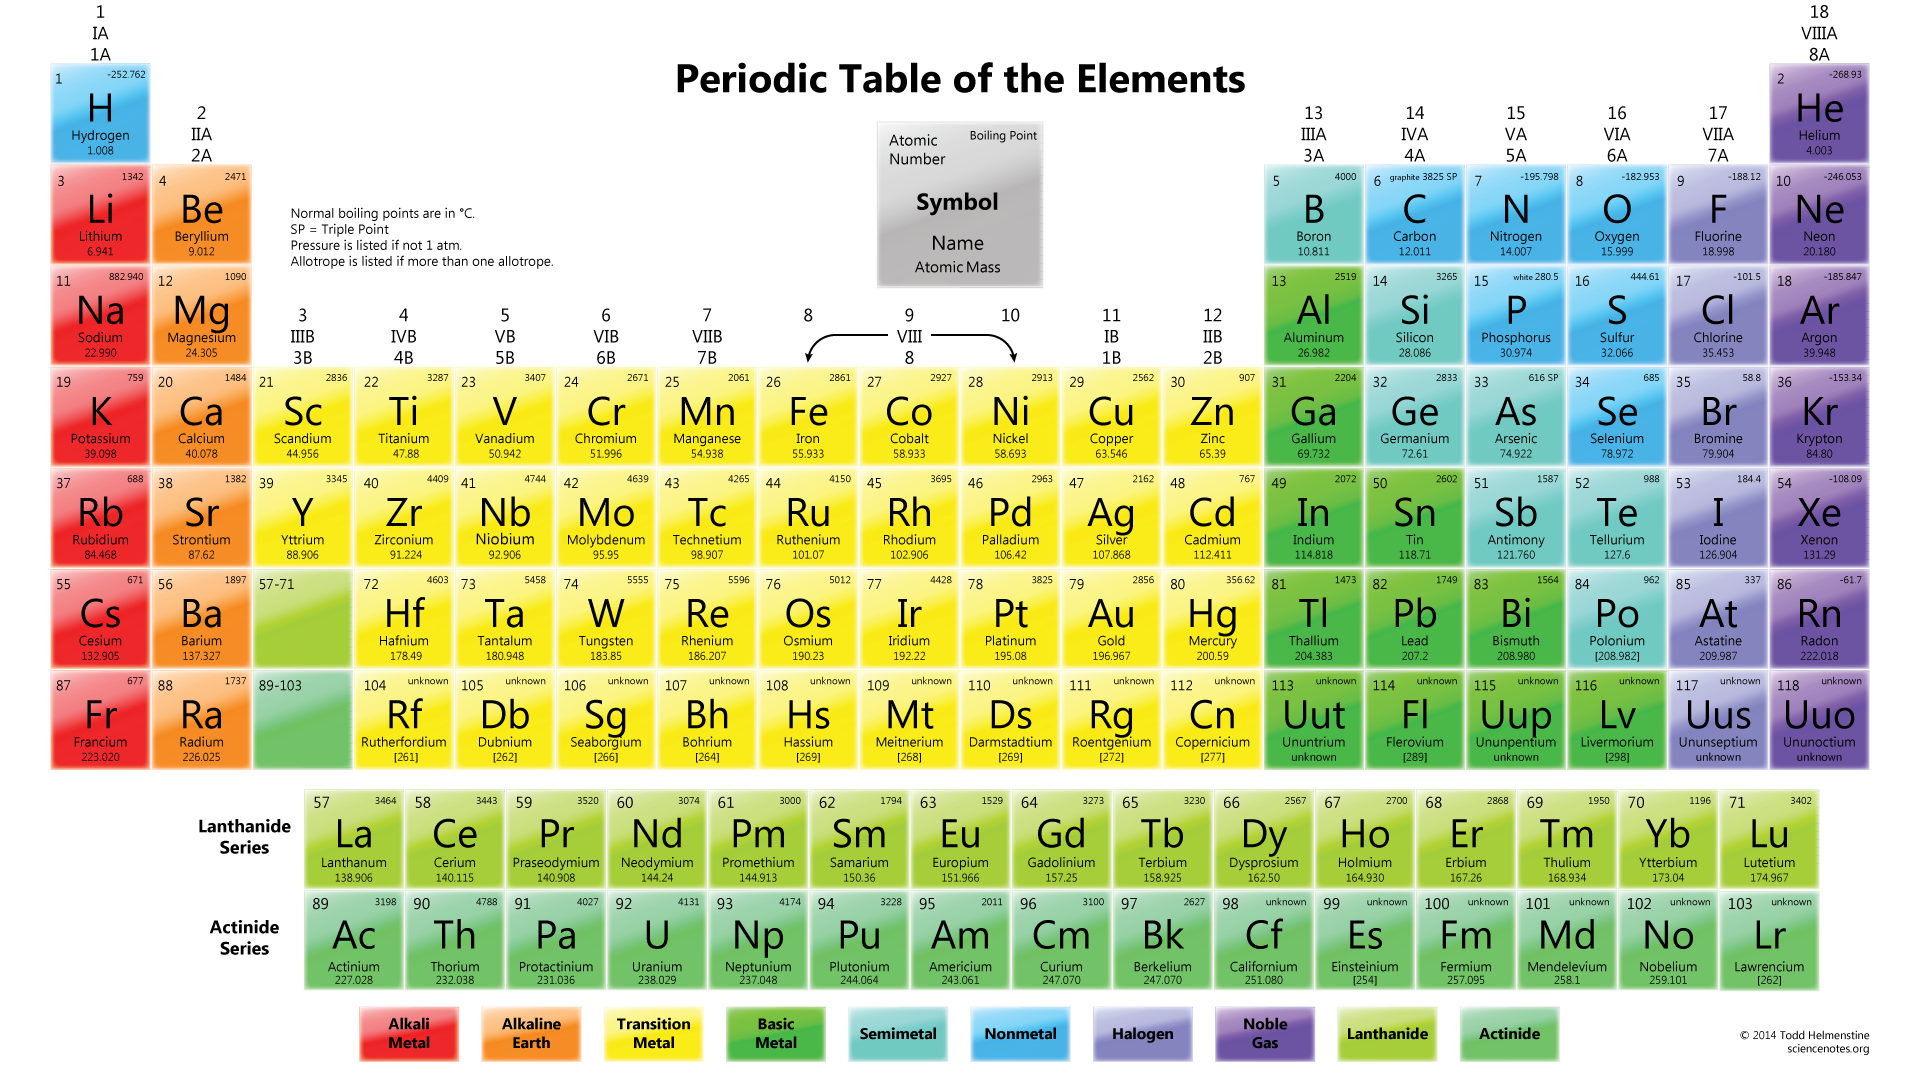 30 printable periodic tables for chemistry science notes and color periodic table of the elements with boiling points gamestrikefo Choice Image